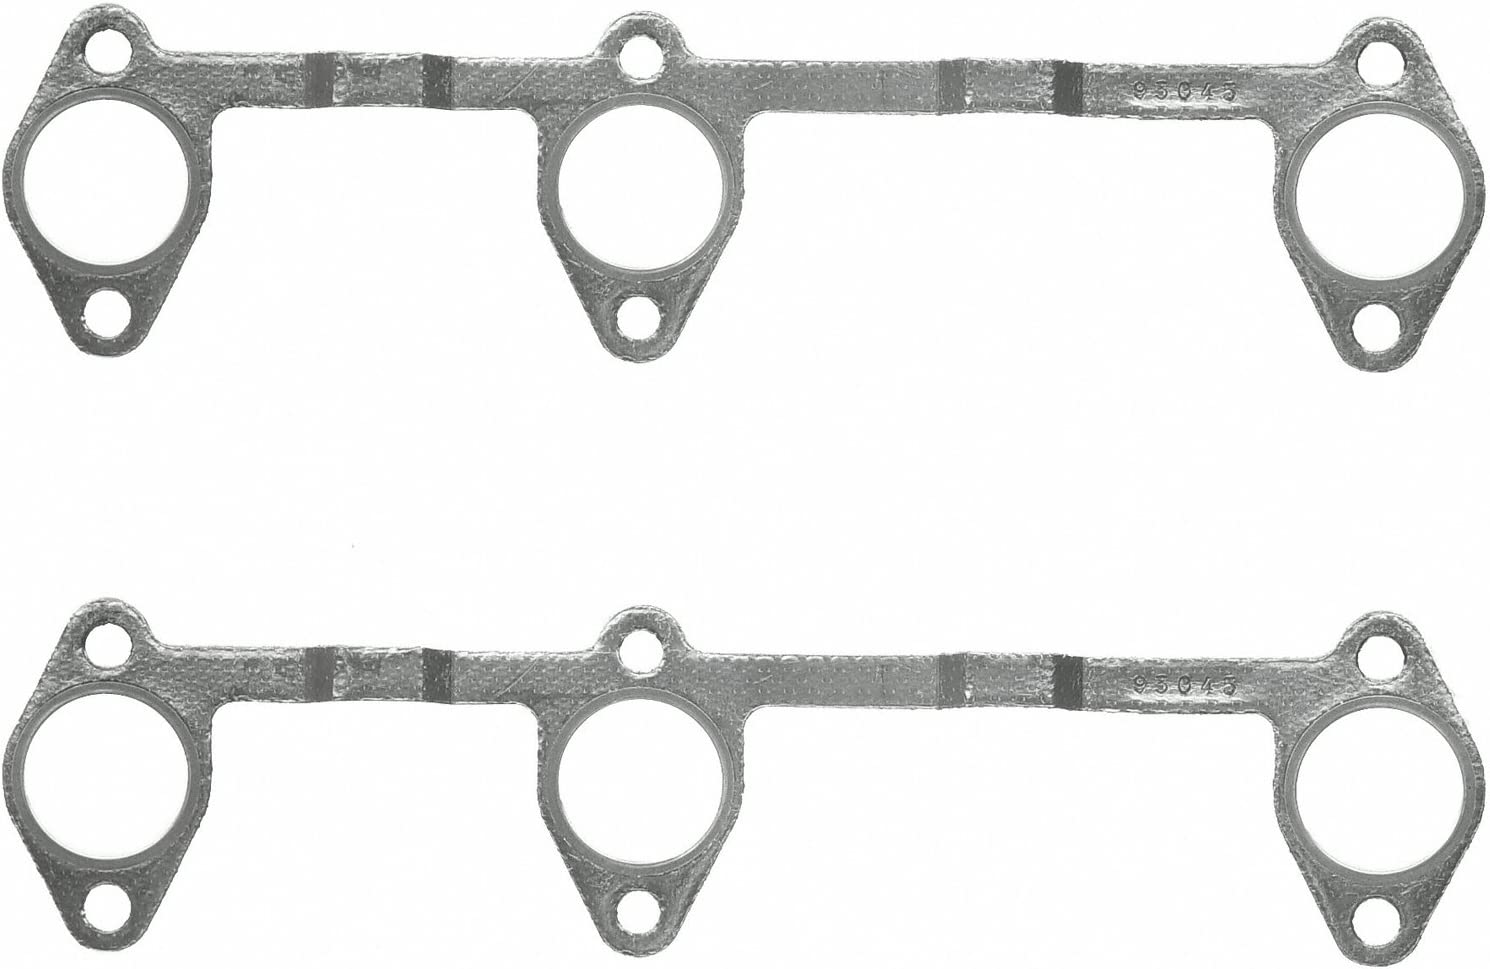 Fel-Pro MS 93045 Exhaust Manifold Gasket Set